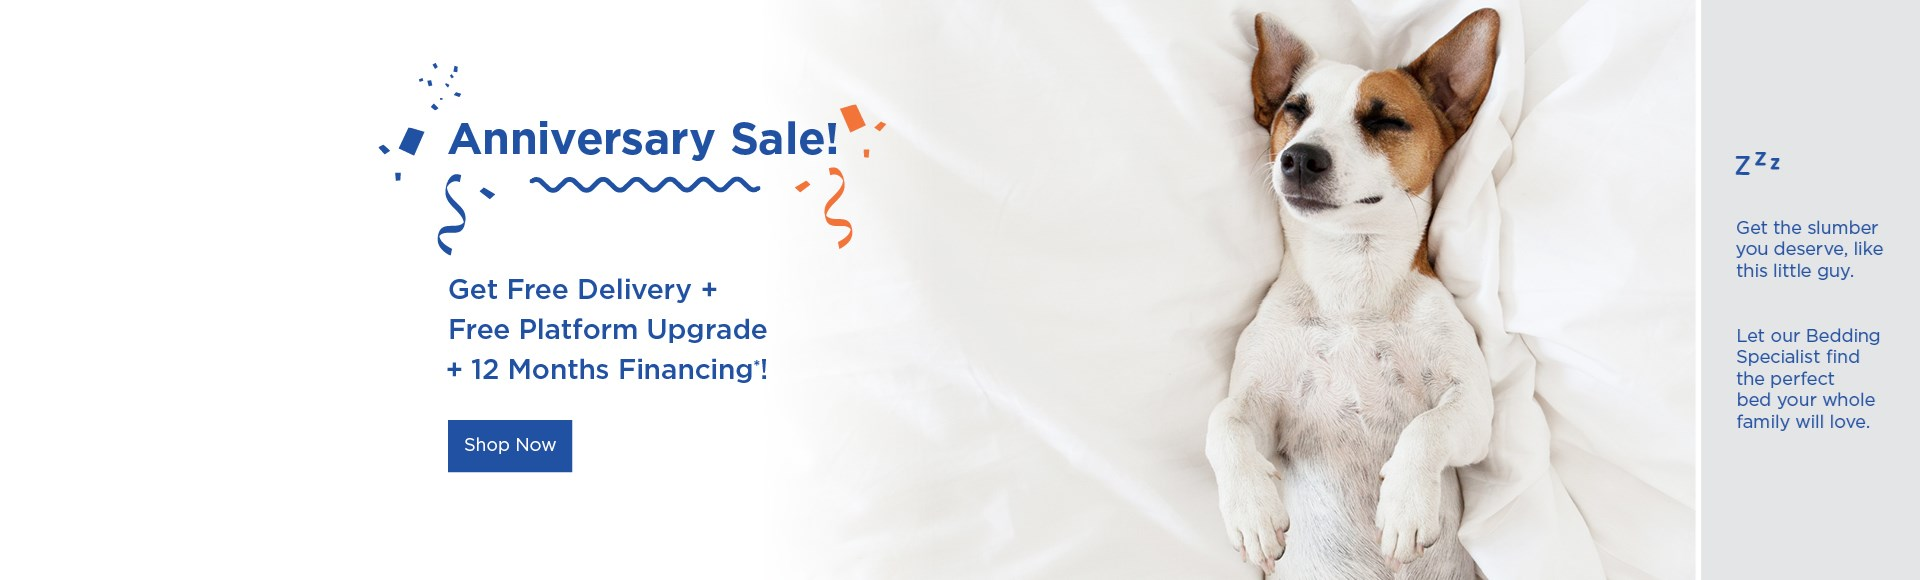 Free delivery, 12 months financing, and free platform upgrade. 10% off all daybeds and headboards. See stiore for details